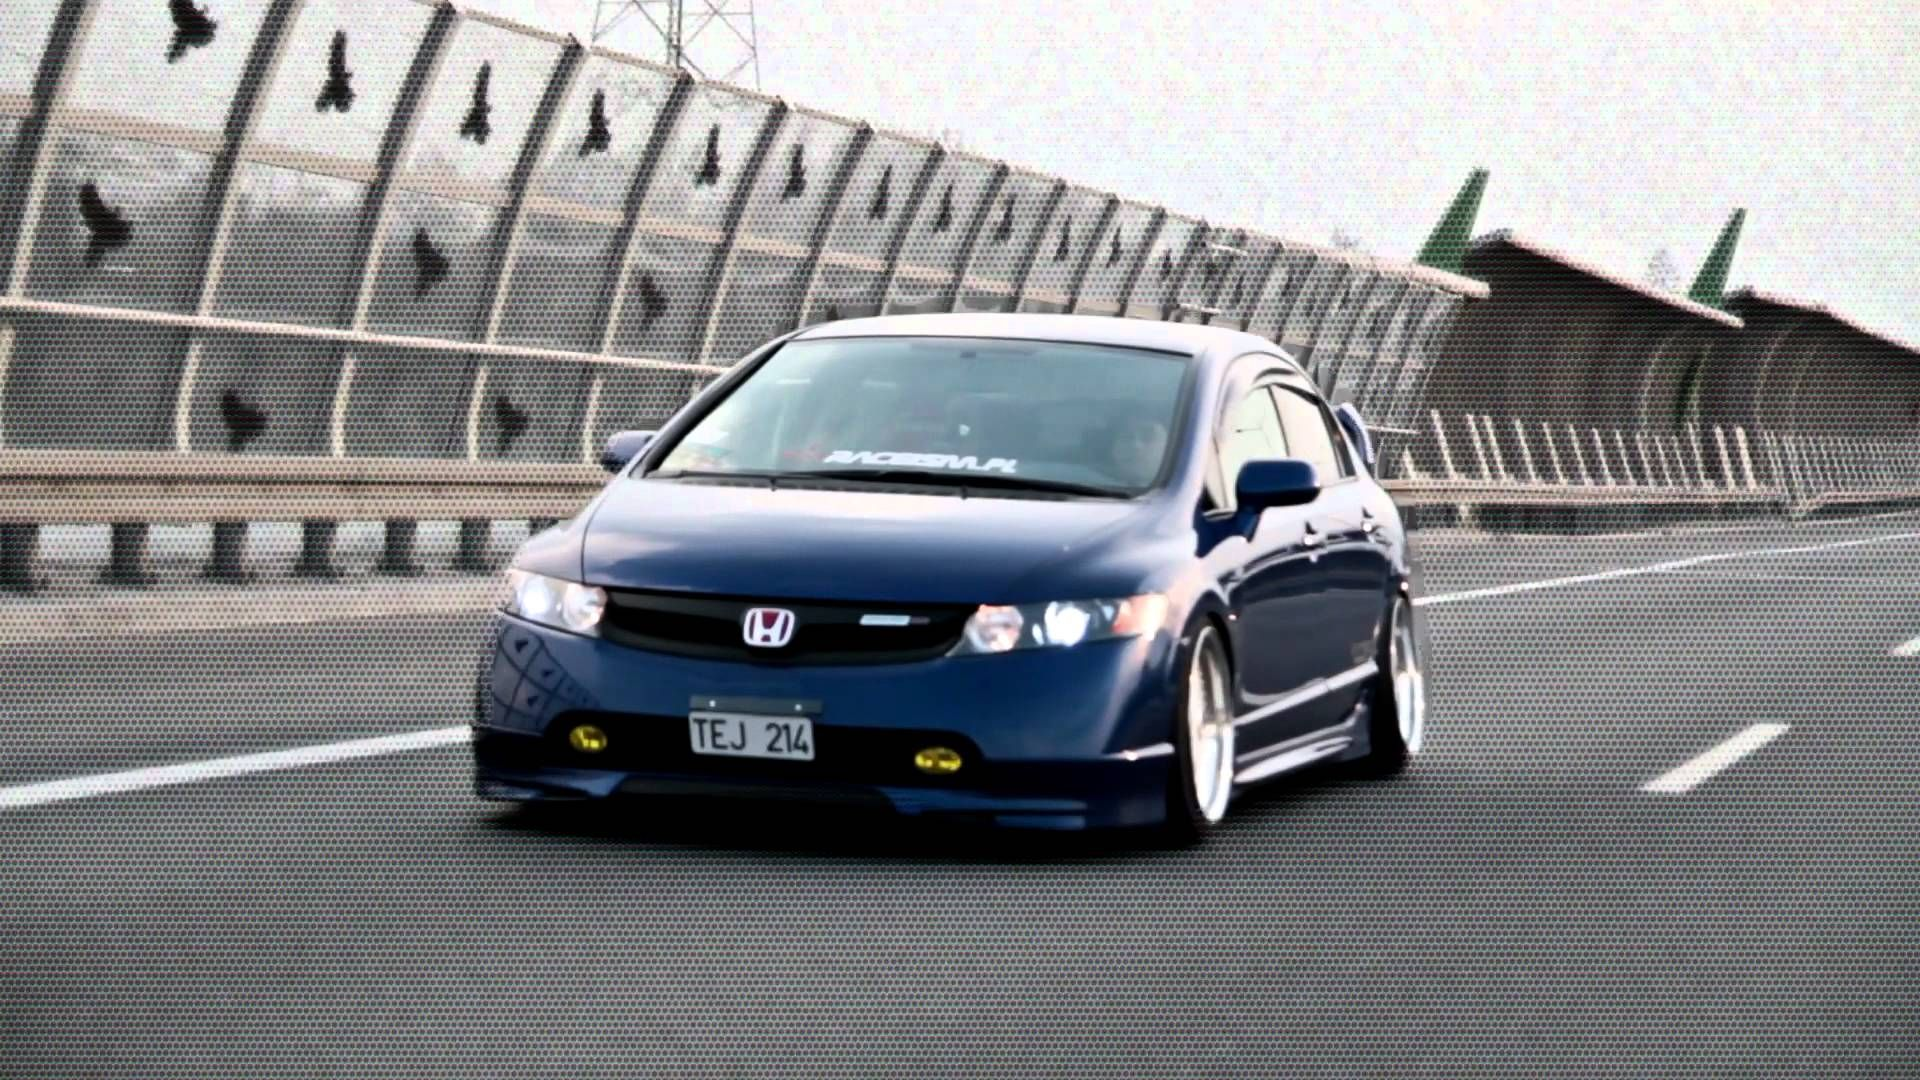 2015 civic si sedan mugen honda civic mugen si by bolek youtube